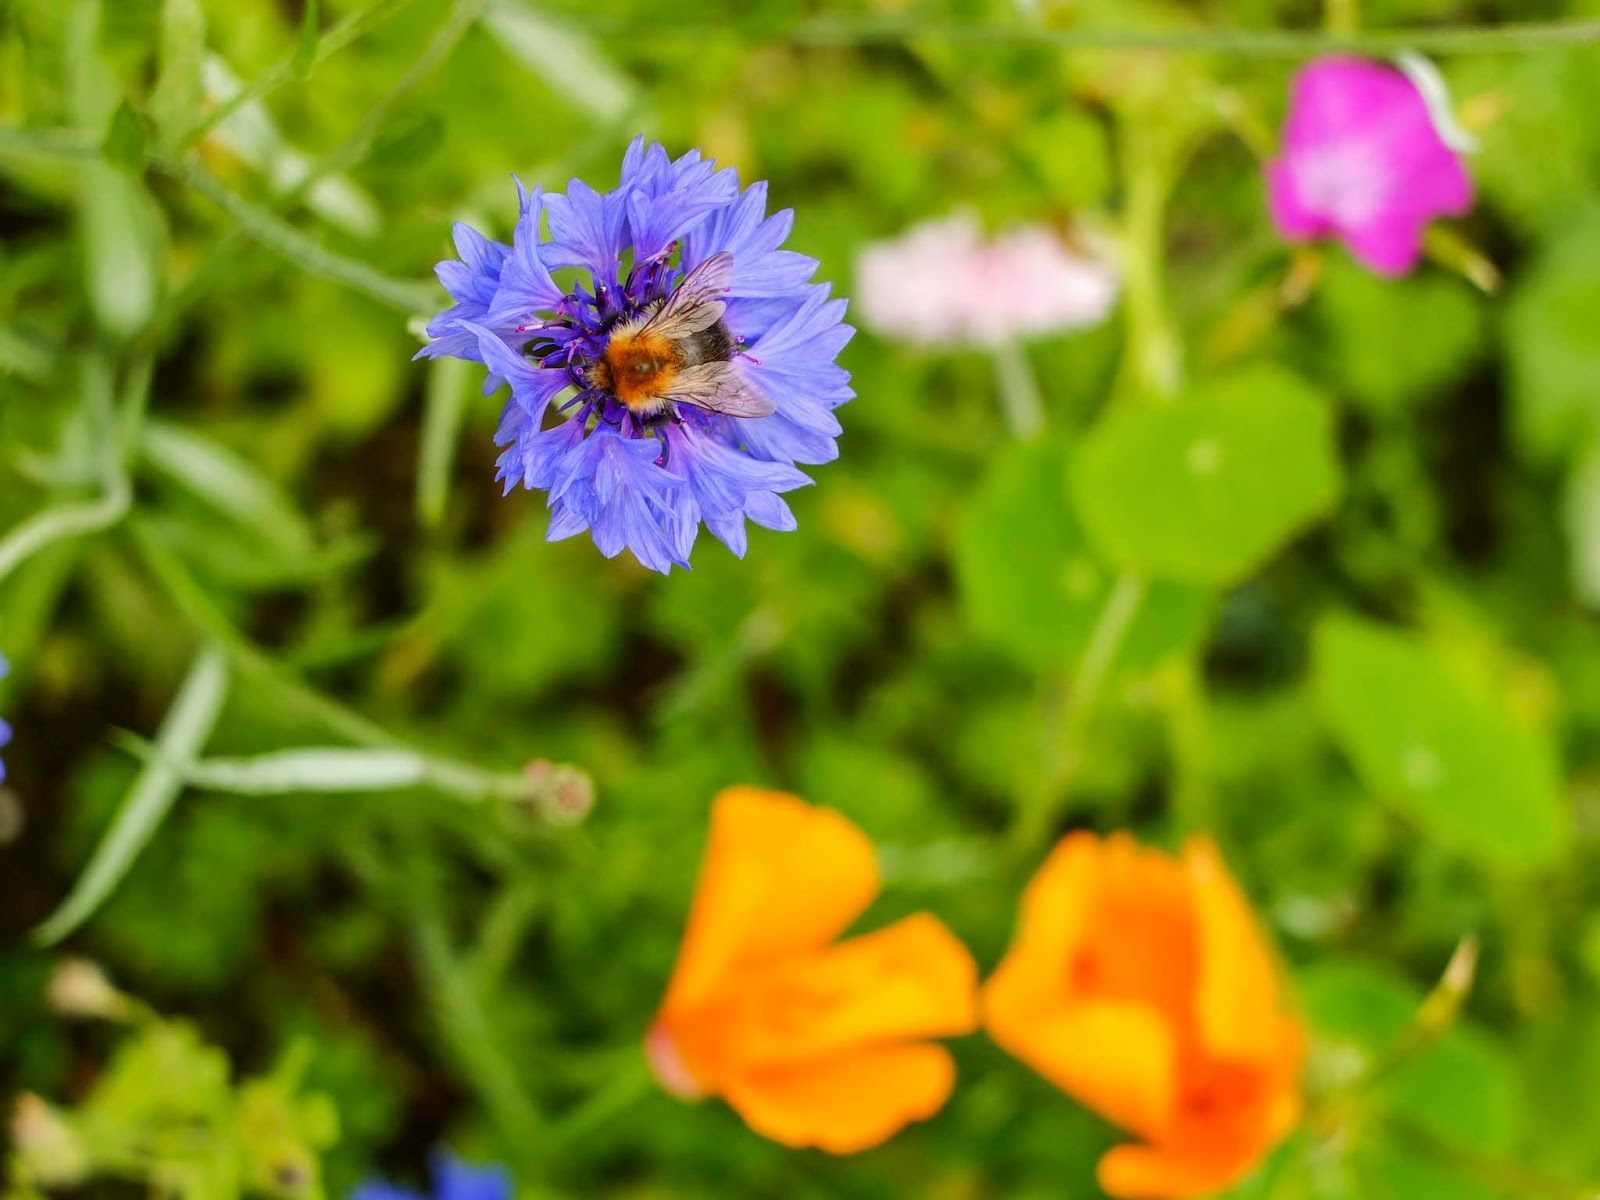 A close up of a bee sitting on top of a cornflower in a meadow.